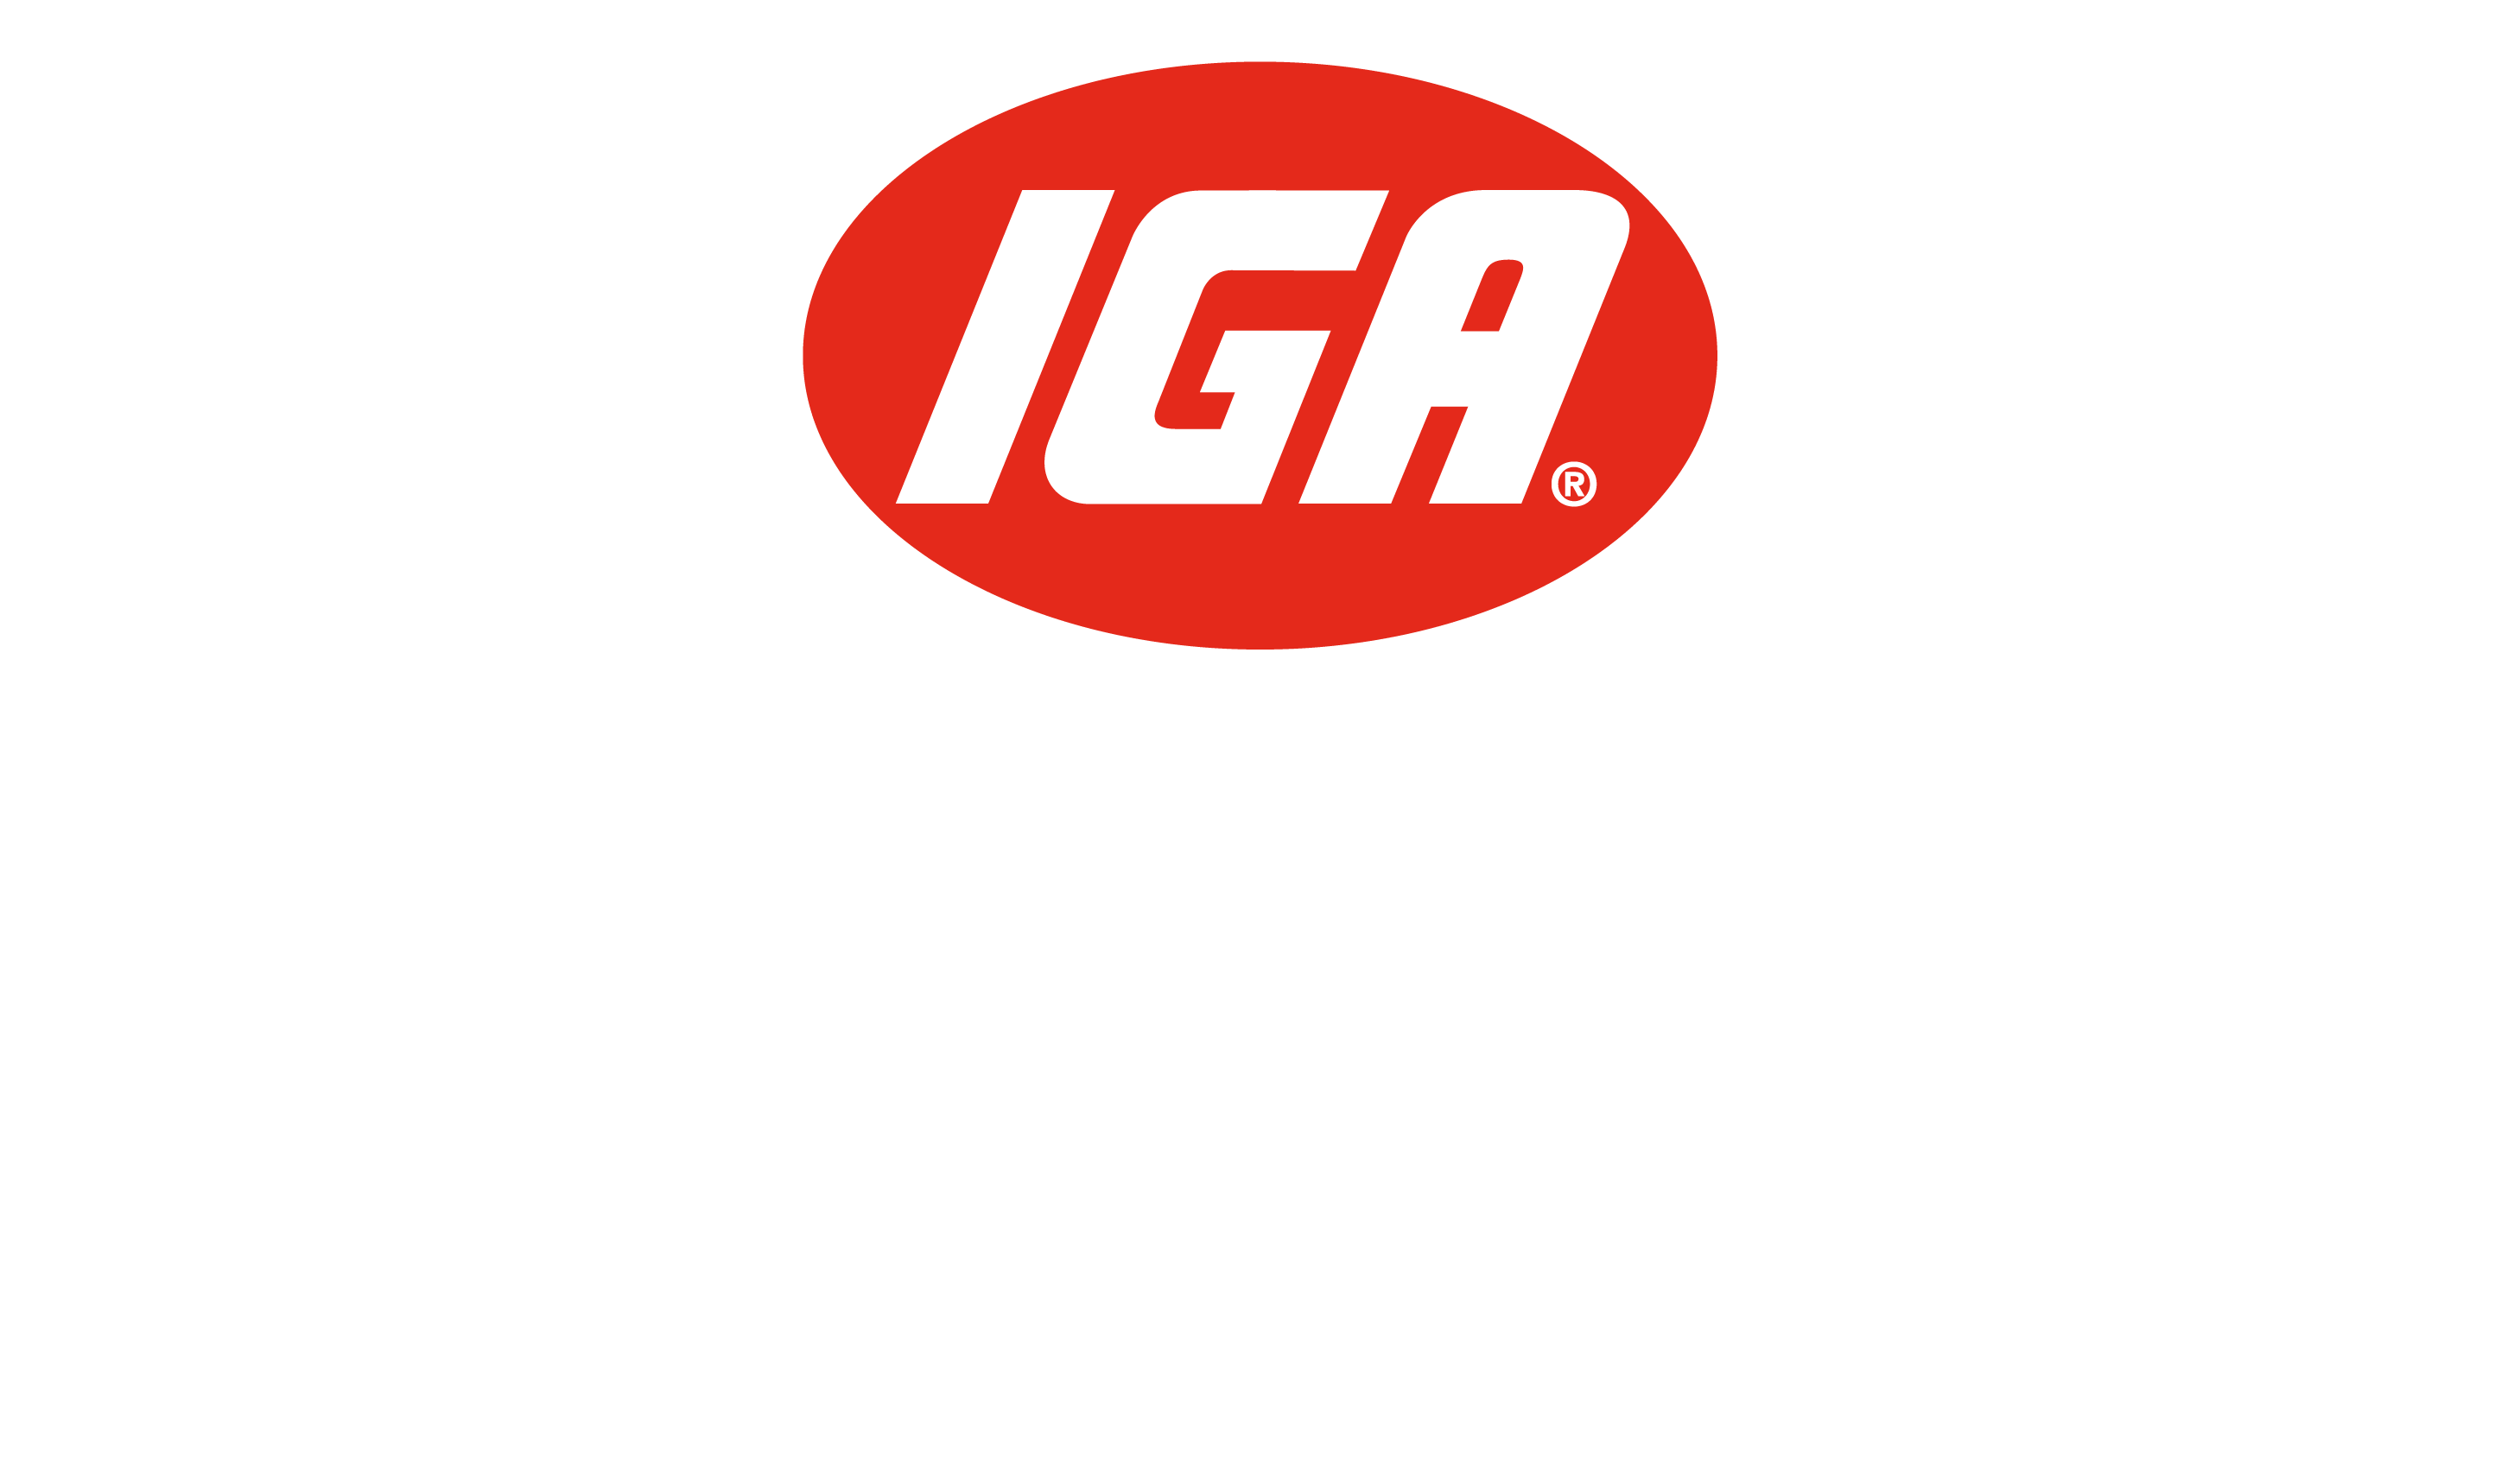 IGA How the Locals Like It